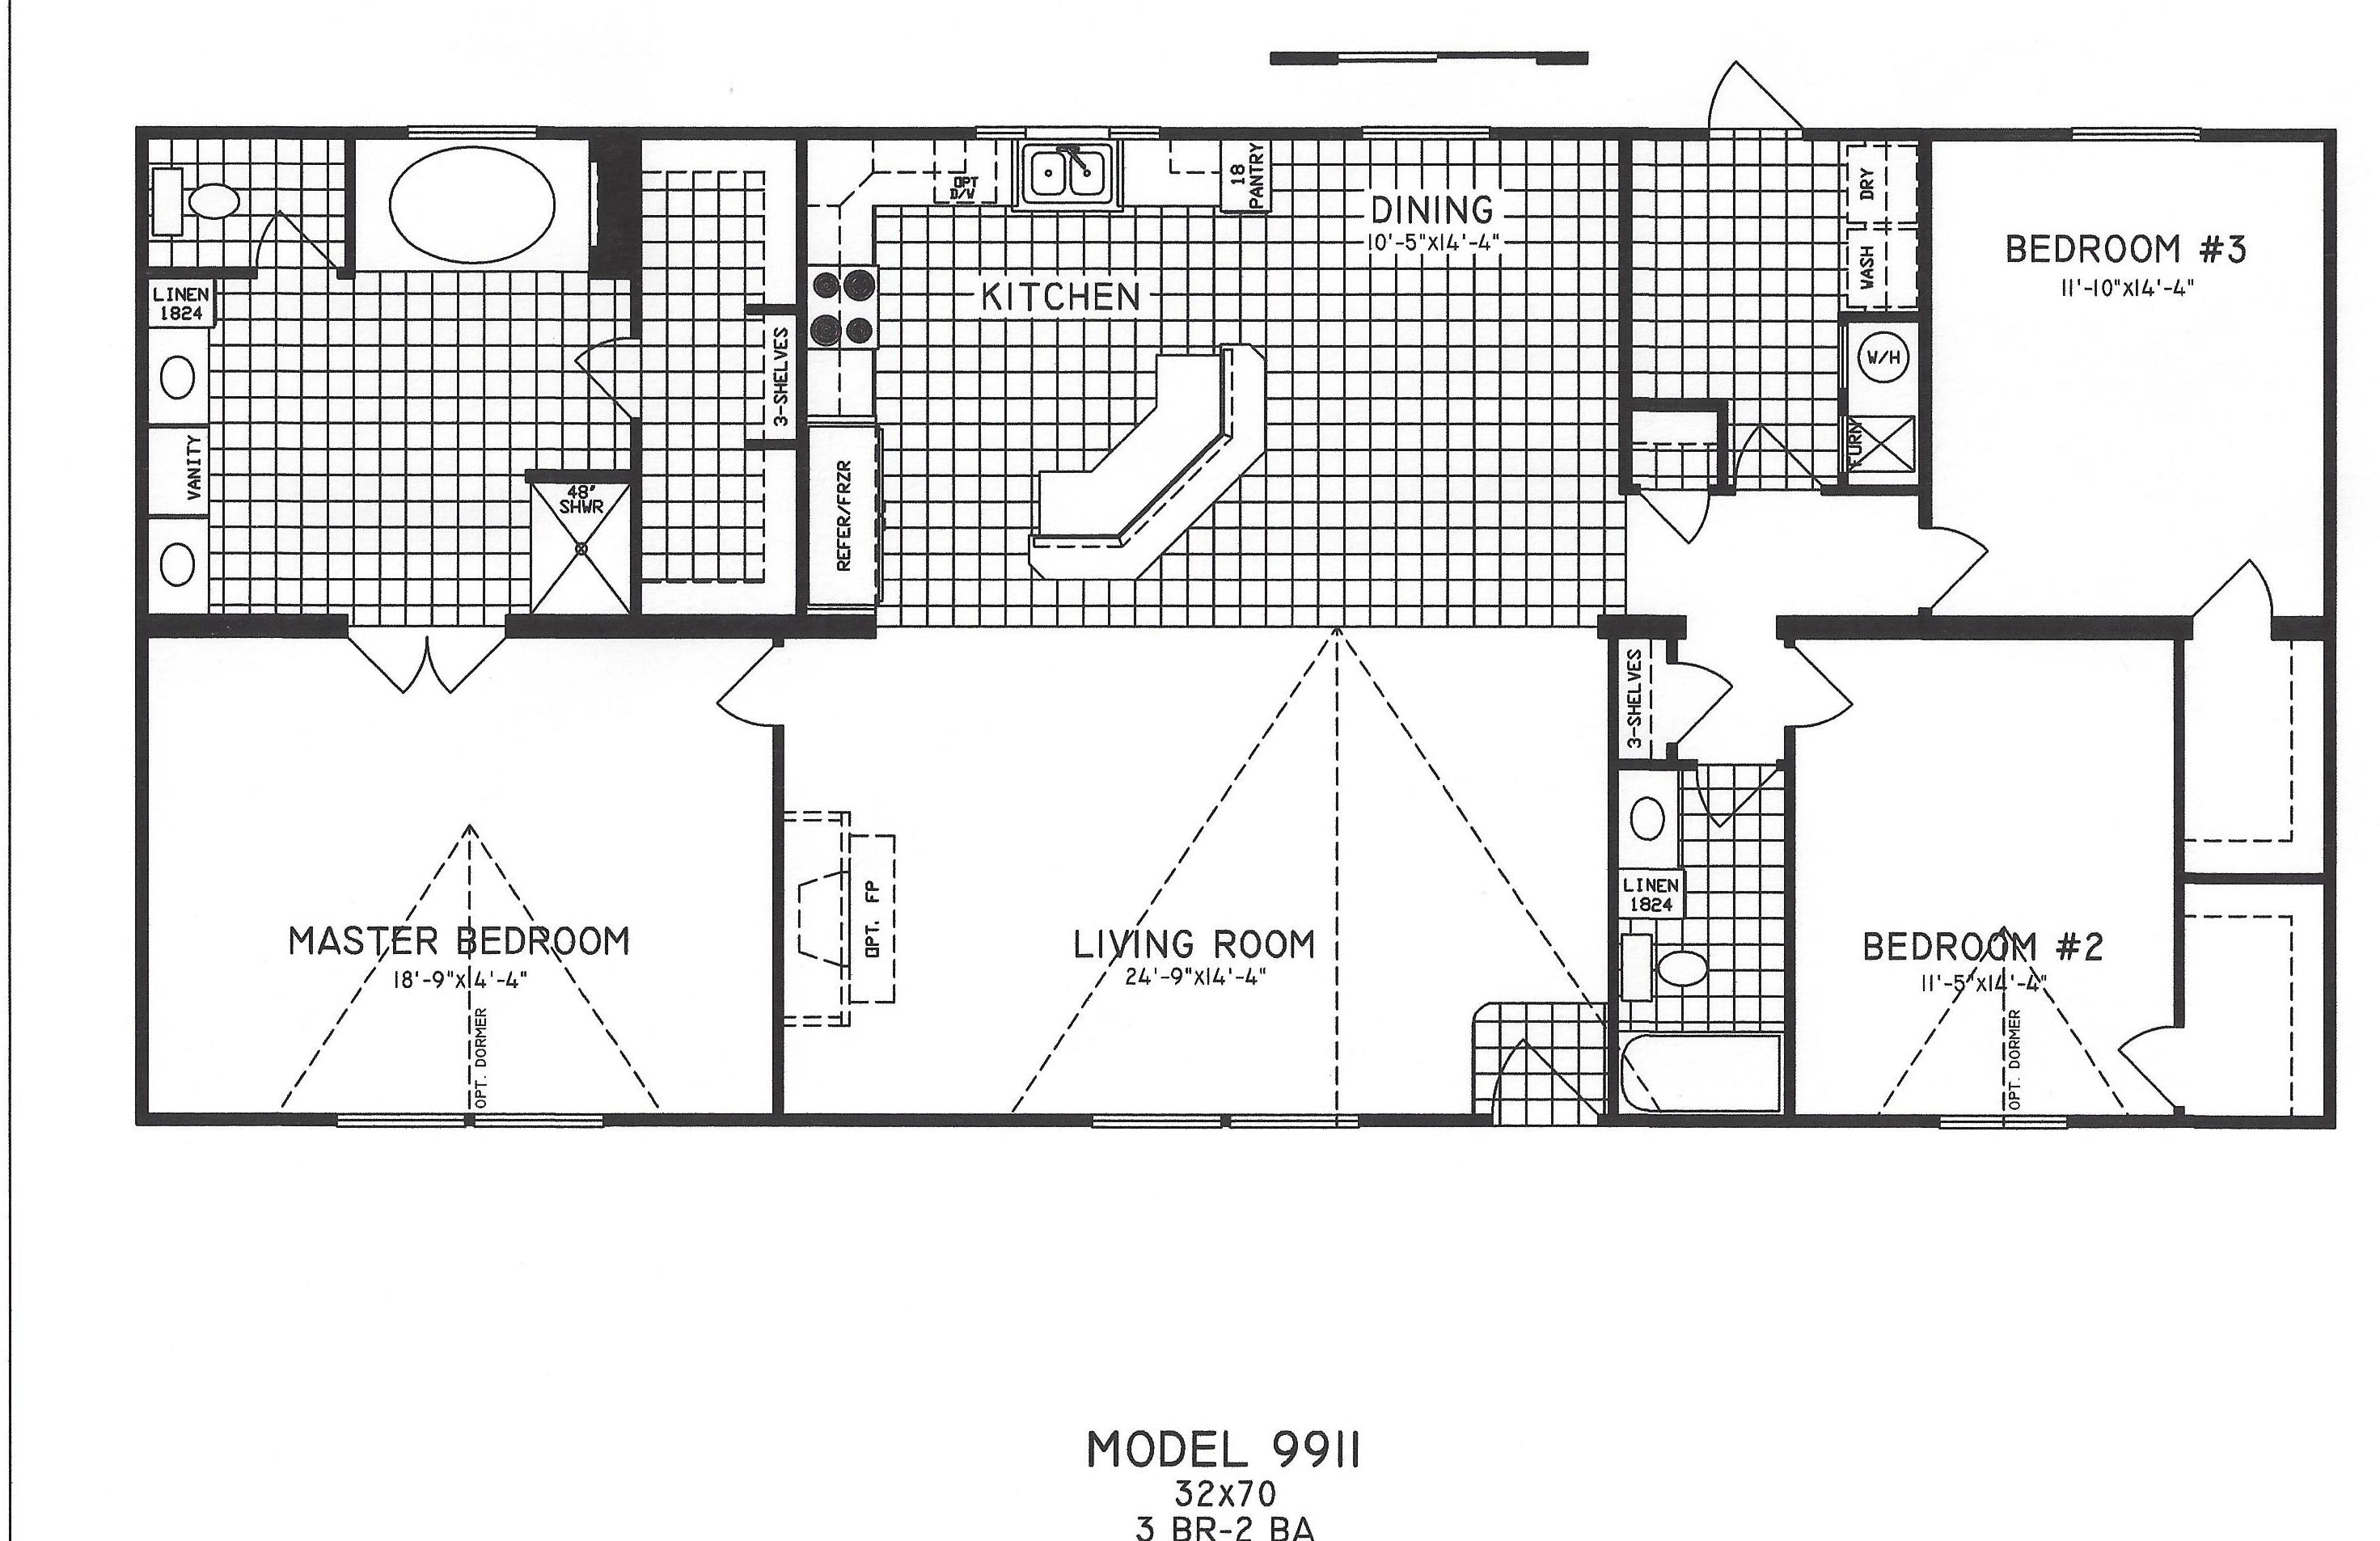 3 bedroom floor plan c 9911 hawks homes manufactured for 3 bedroom open floor plan